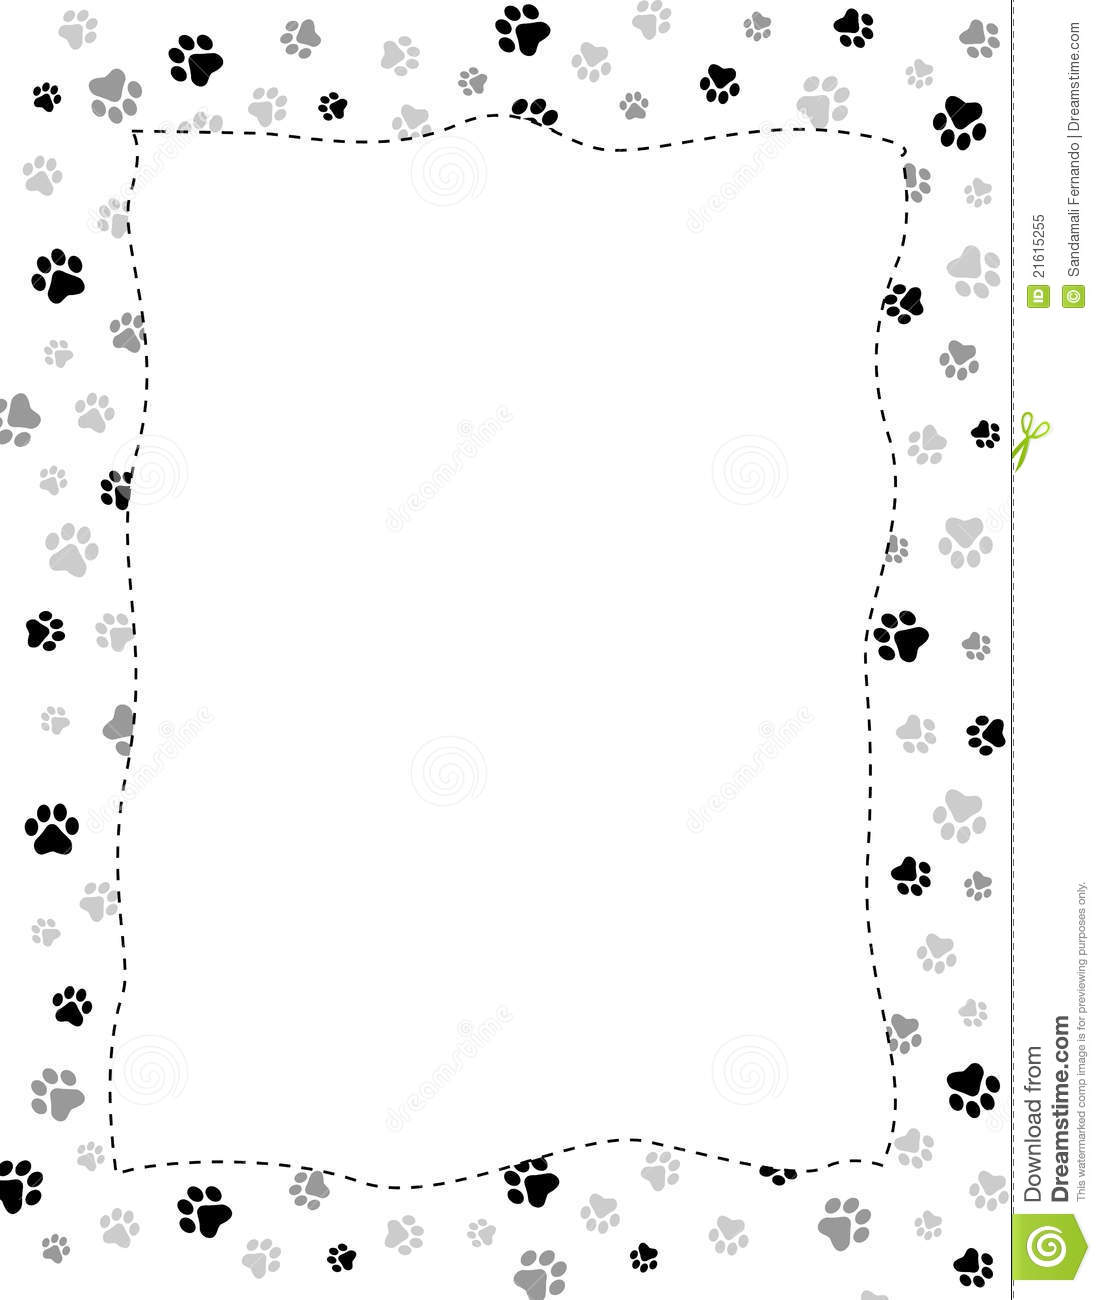 Paw Prints Border Stock Vector Illustration Of Animals 21615255